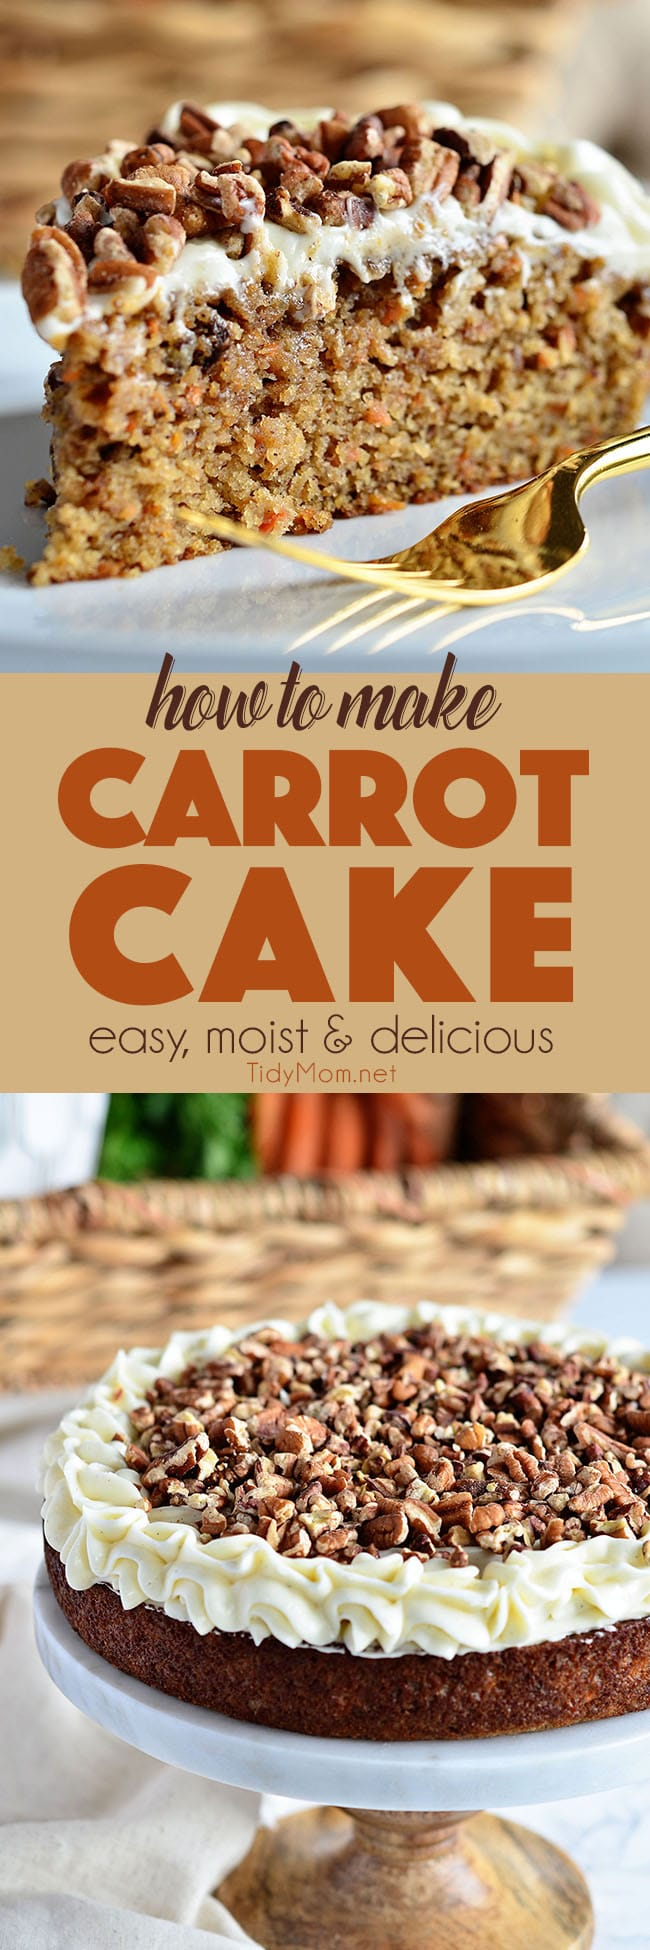 carrot cake photo collage